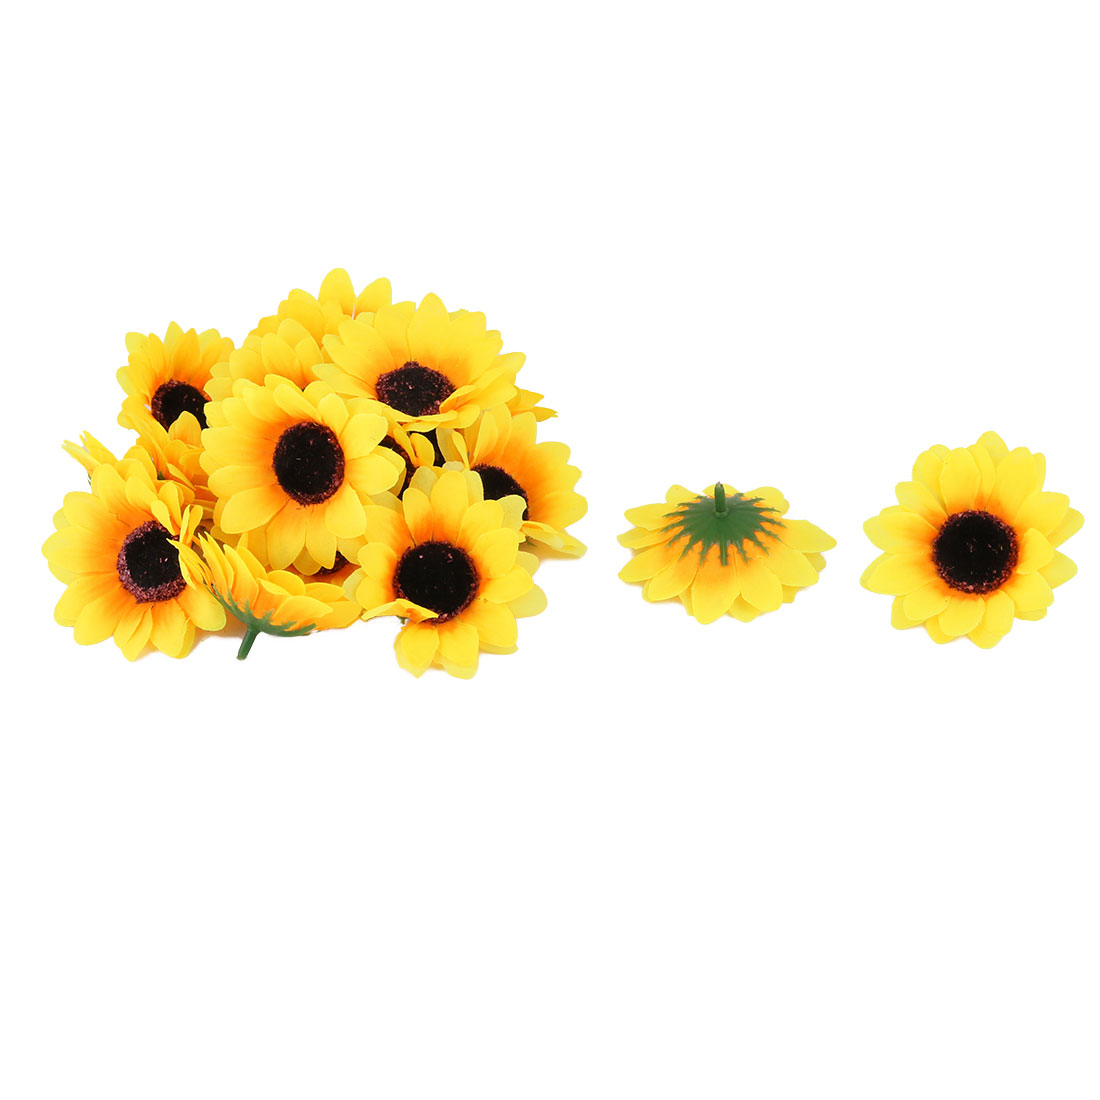 Home Garden Fabric Sunflower Applique Patches for Scrapbooking DIY Craft Making Clothes Sewing Decoration 20pcs